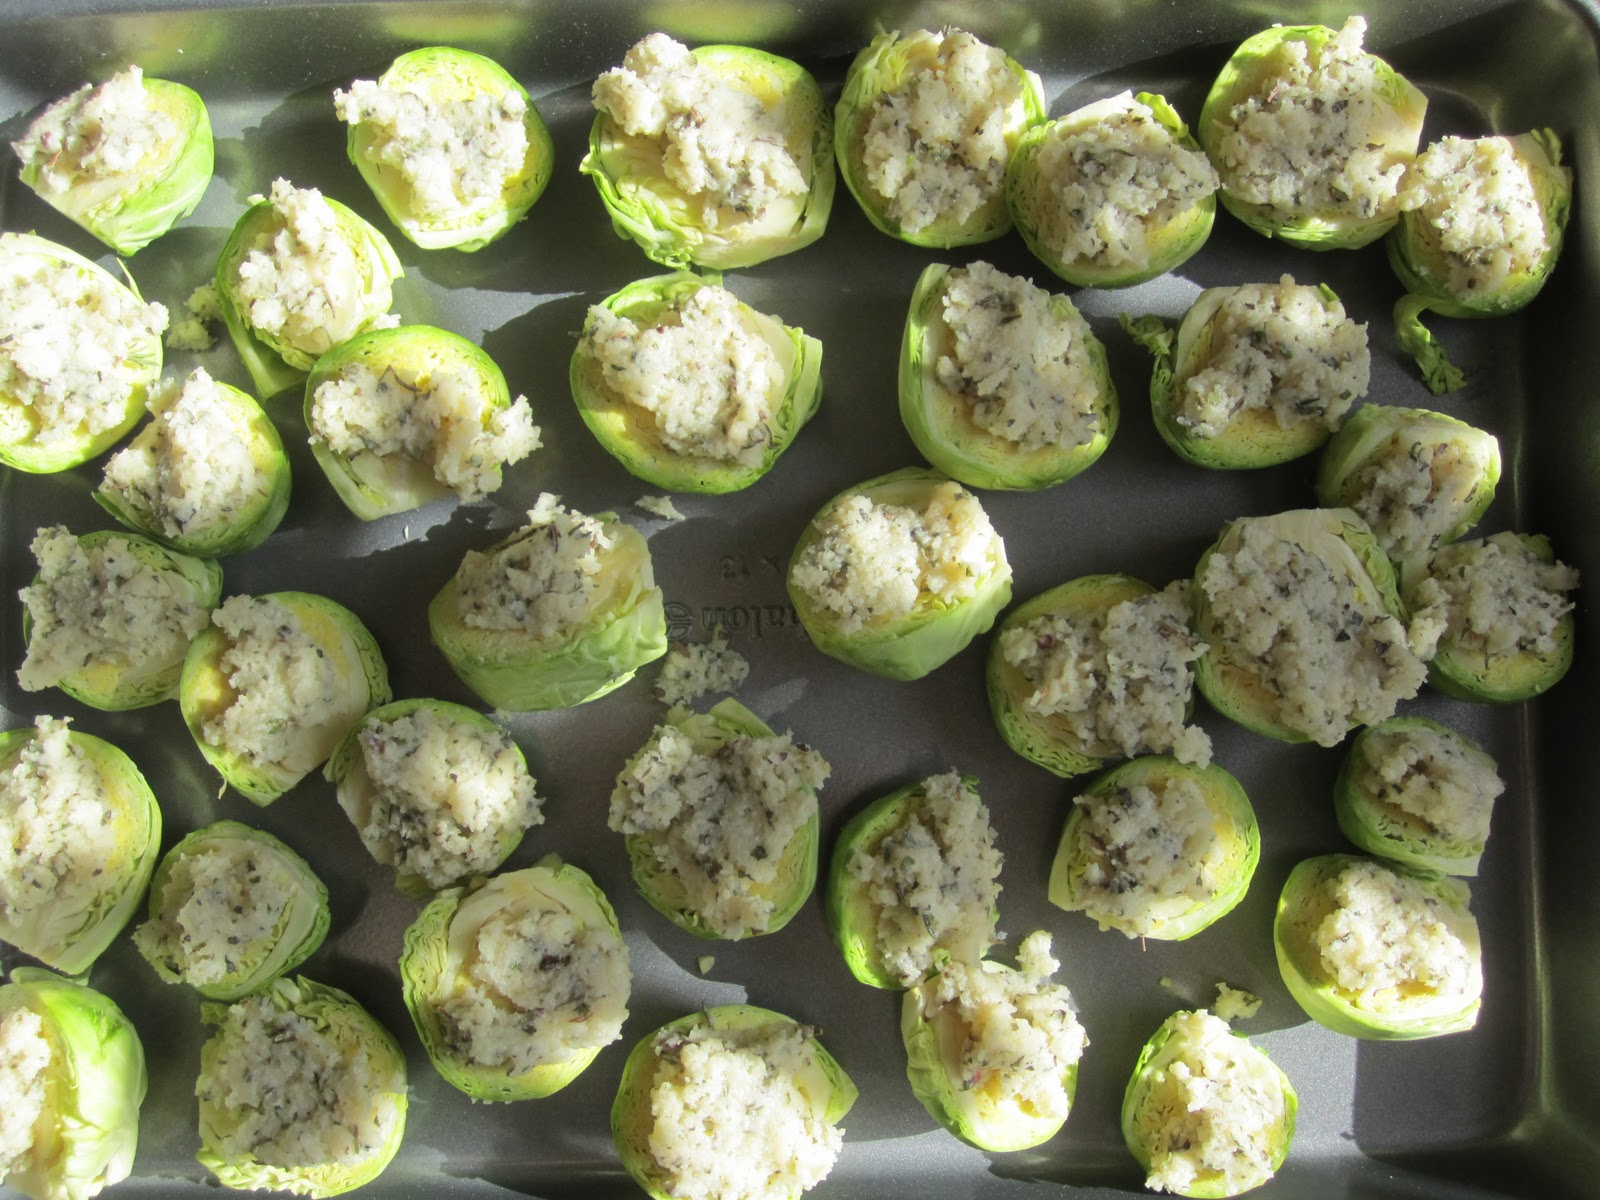 ... the biggest sprouts are tender and the topping is lightly browned